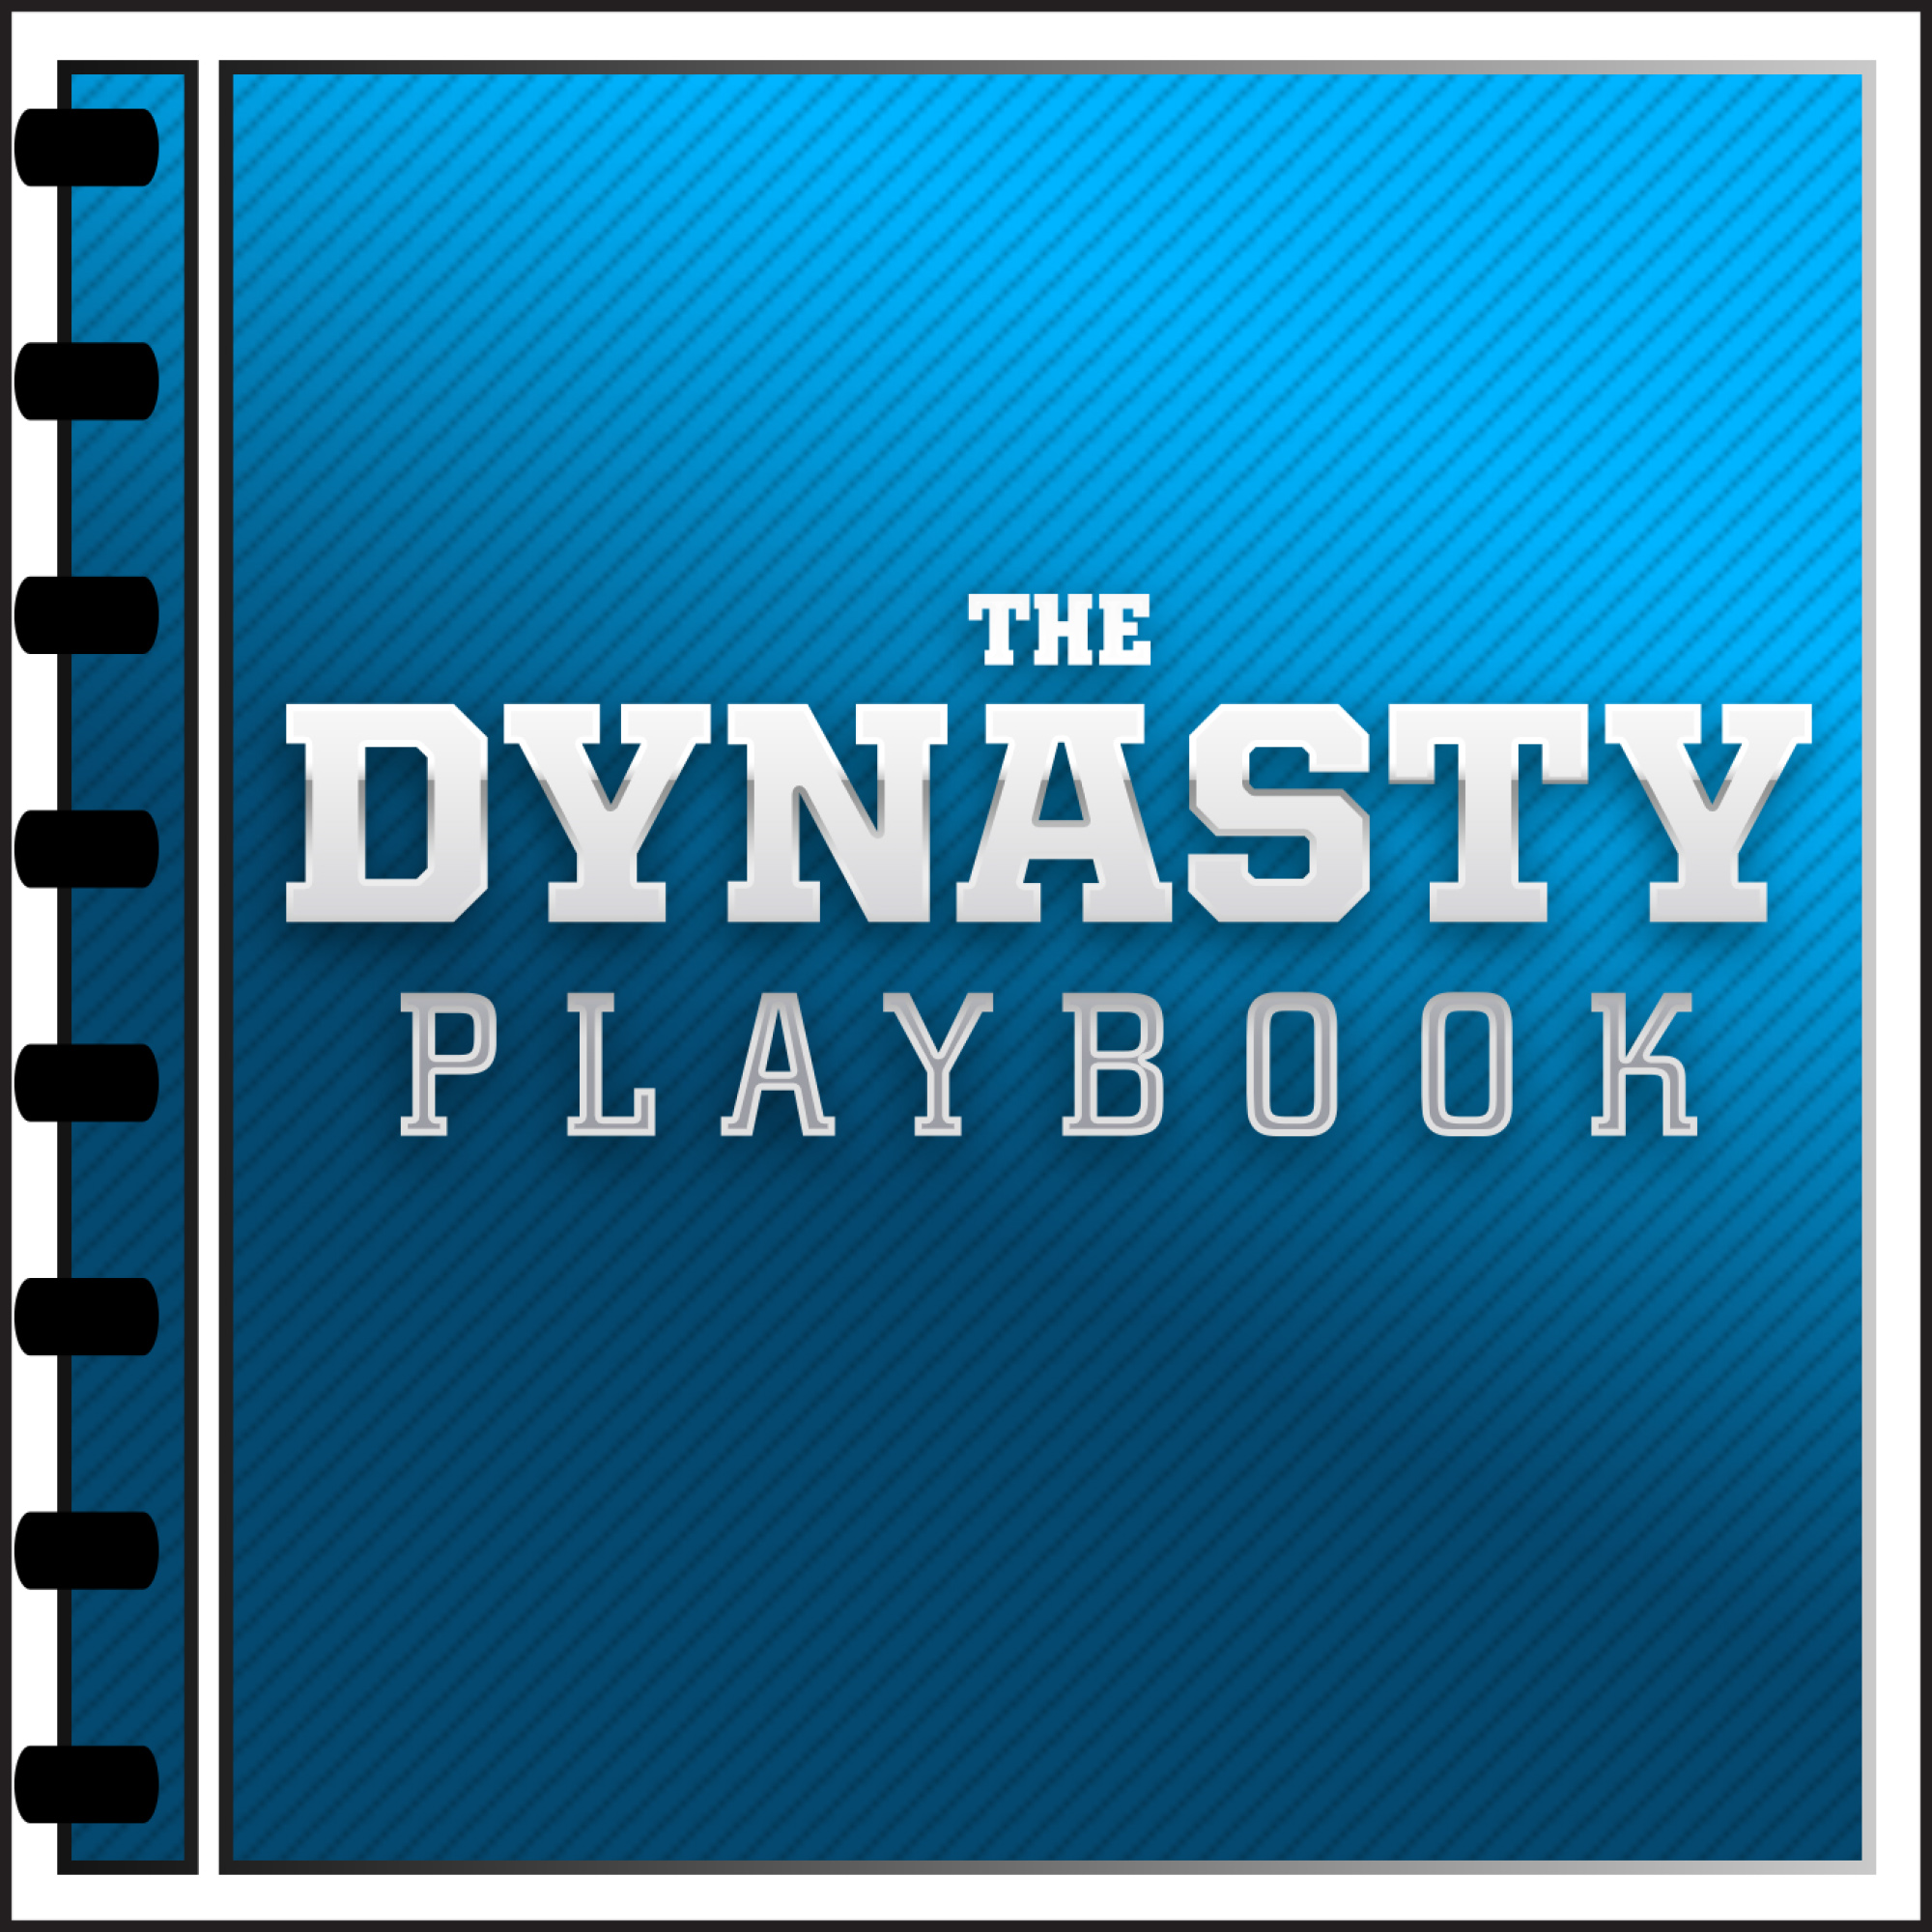 The Dynasty Playbook